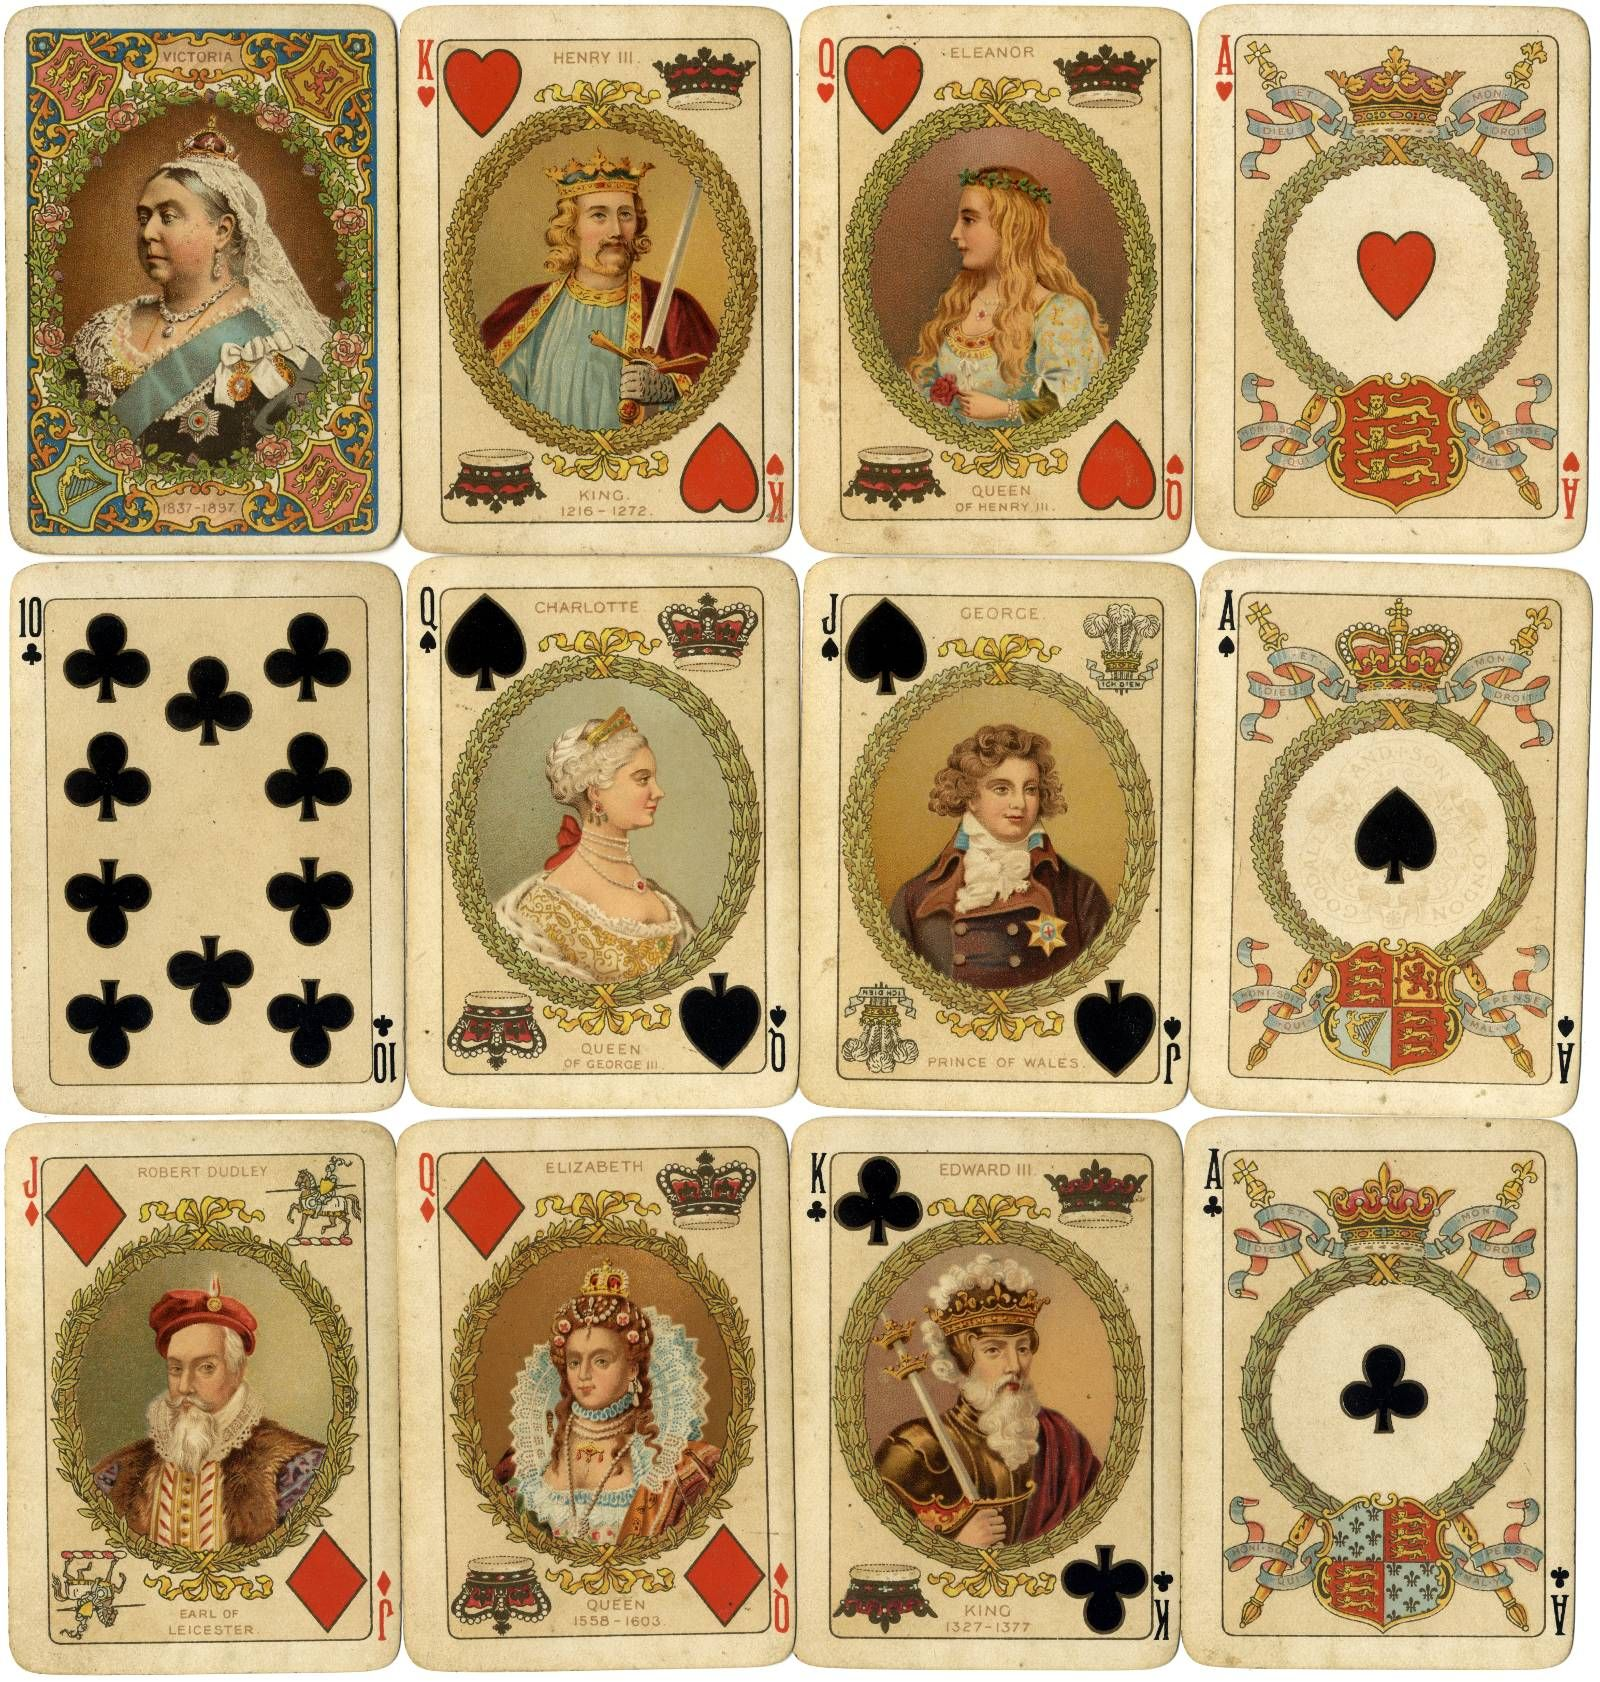 Playing cards commemorating Queen Victoria's Diamond Jubilee, manufactured by Chas Goodall & Son, 1897.